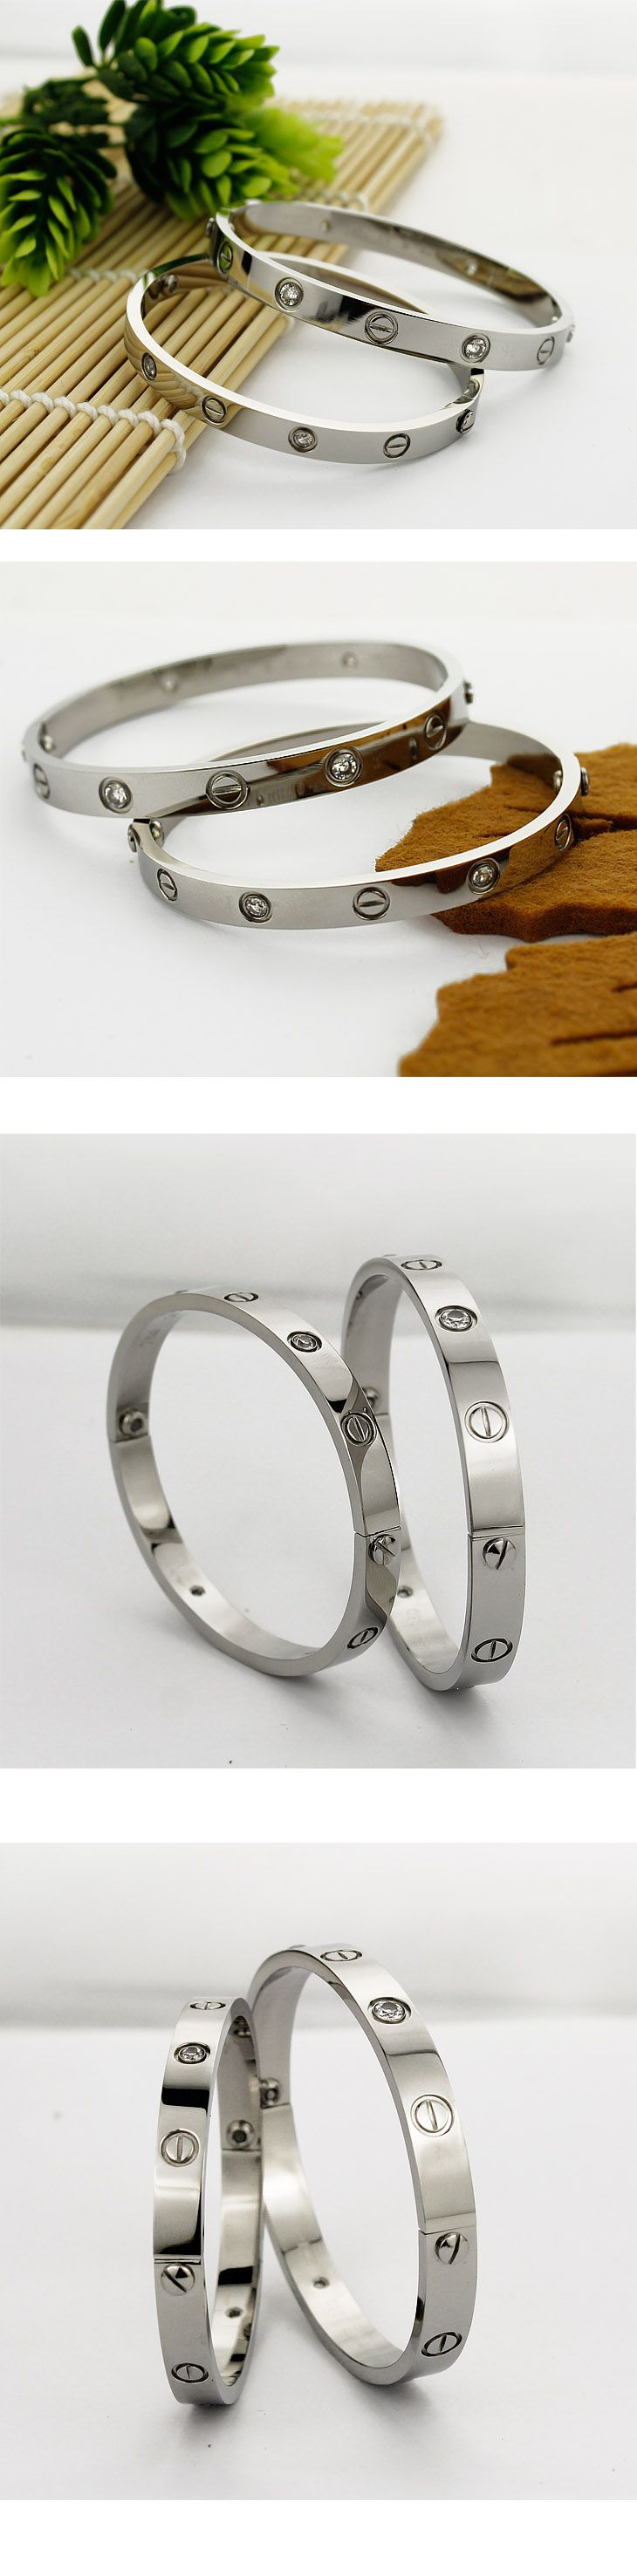 Cartier leve lovers bangles white gold diamond price 88 99